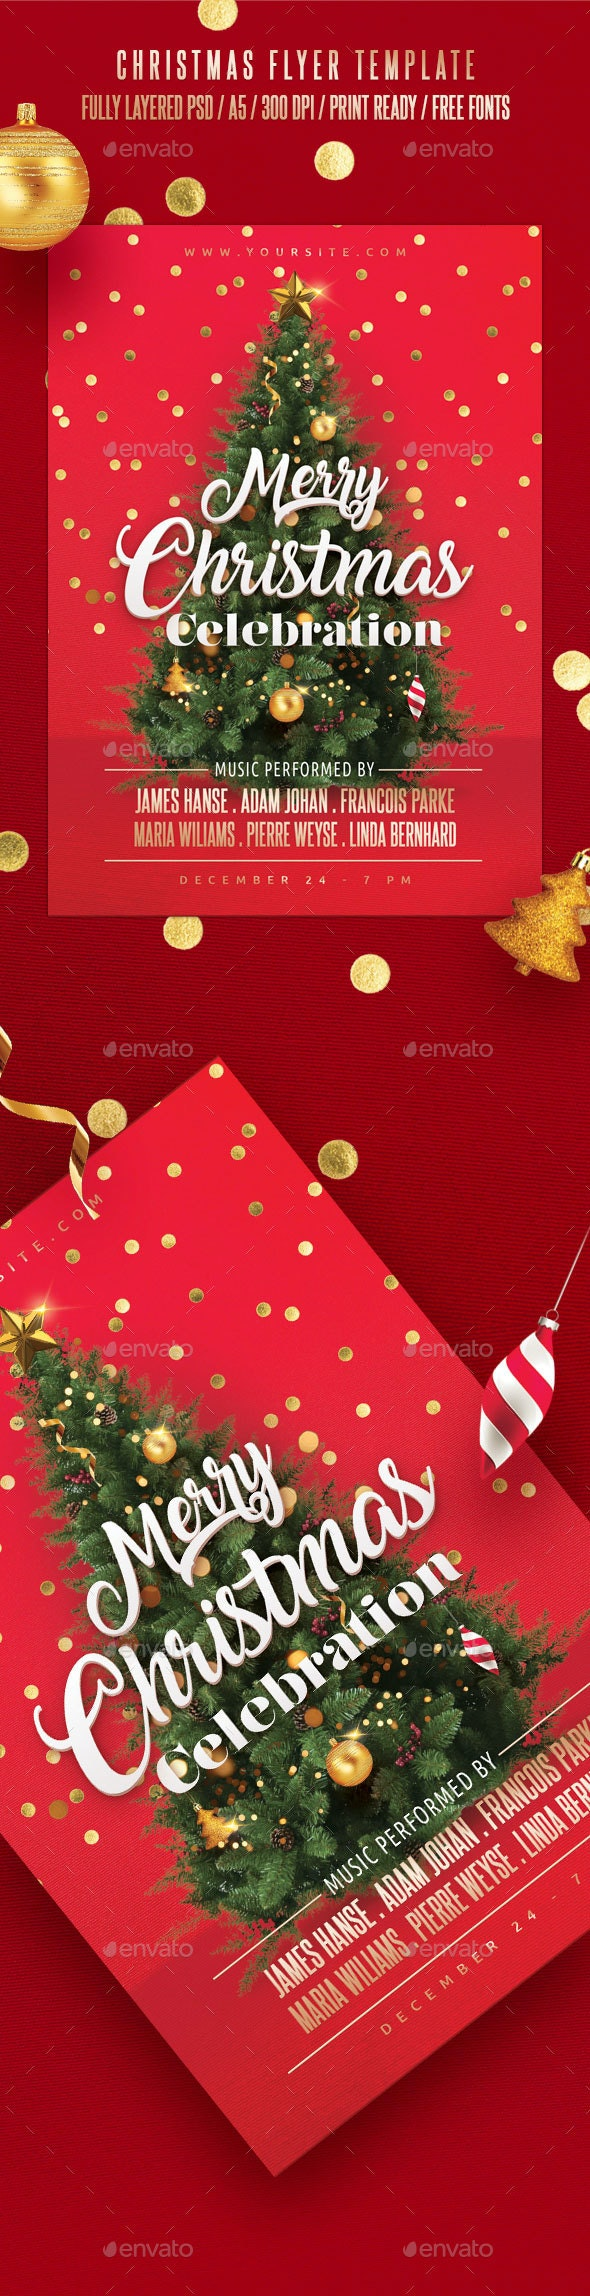 Christmas Flyer Template - Holidays Events